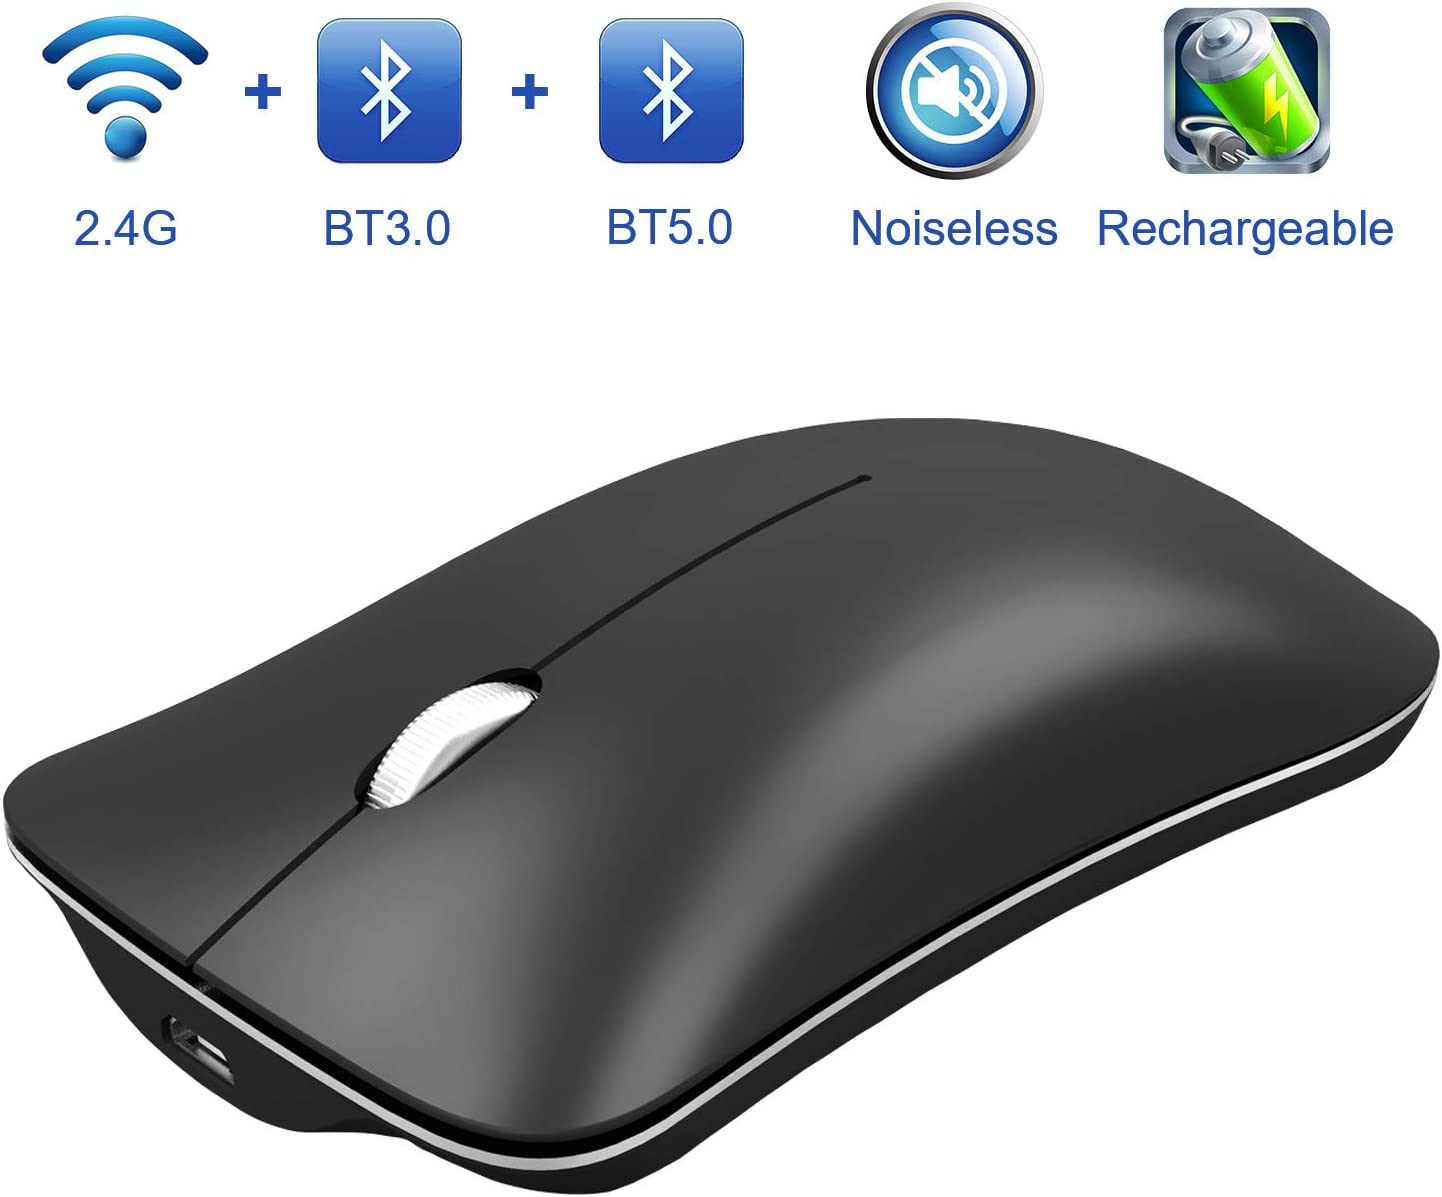 Bluetooth Wireless Mouse for Laptop, Lersyco Rechargeable Silent Computer Mouse with 3 Modes(BT5.0, BT3.0 and USB 2.4GHz), 500mAh, Portable Mouse for Desktop, MacBook, PC(Black)